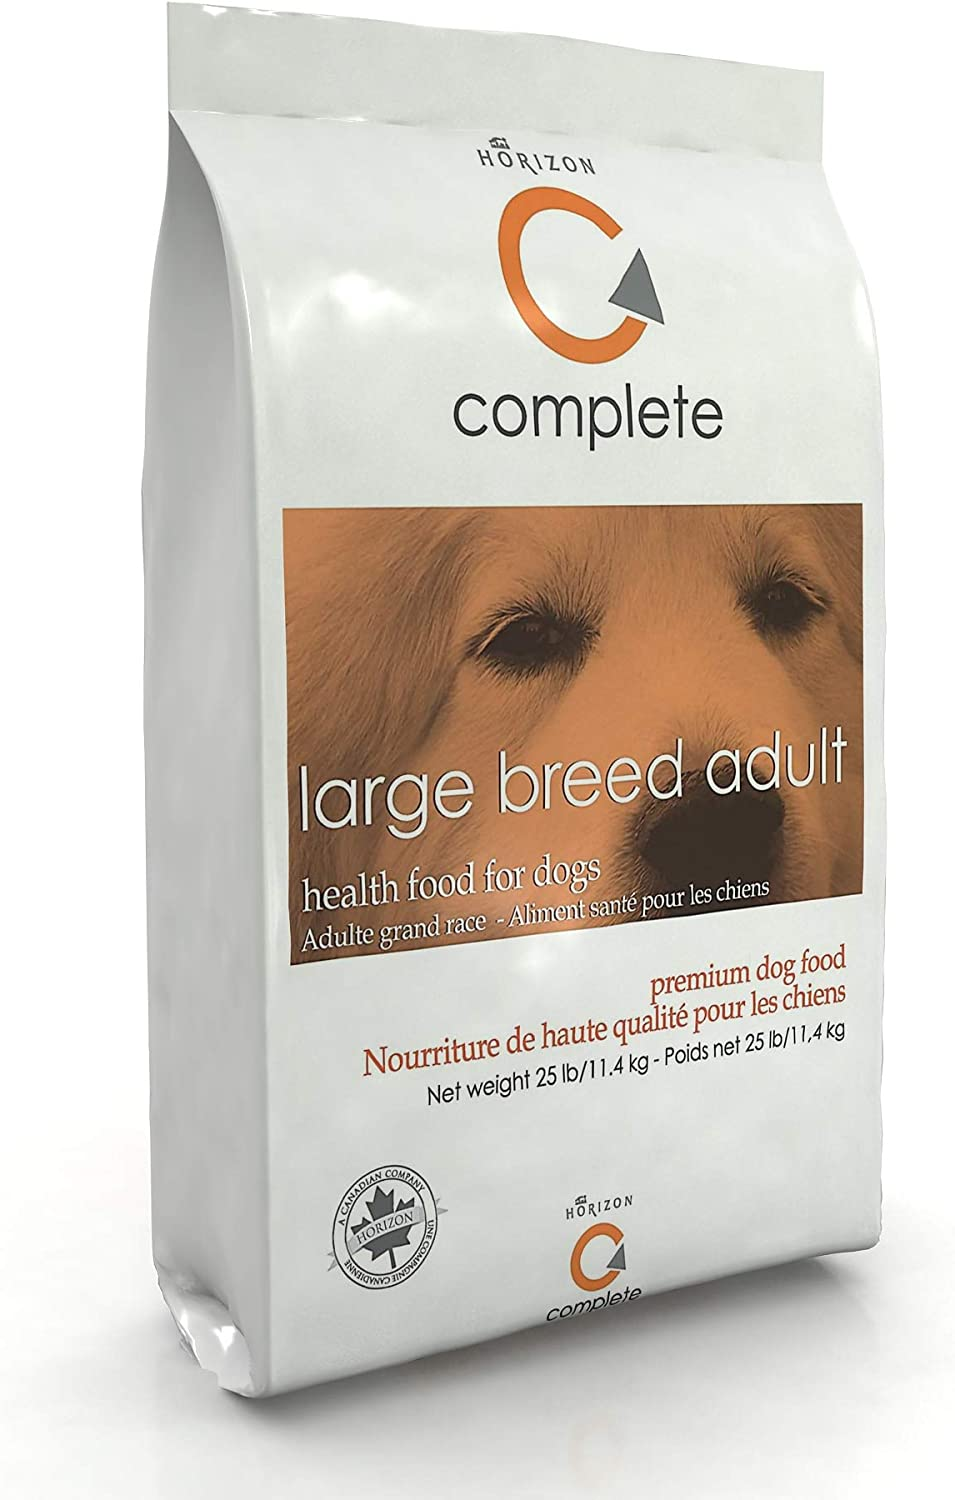 Horizon Complete Large Breed Adult - 25 Lb